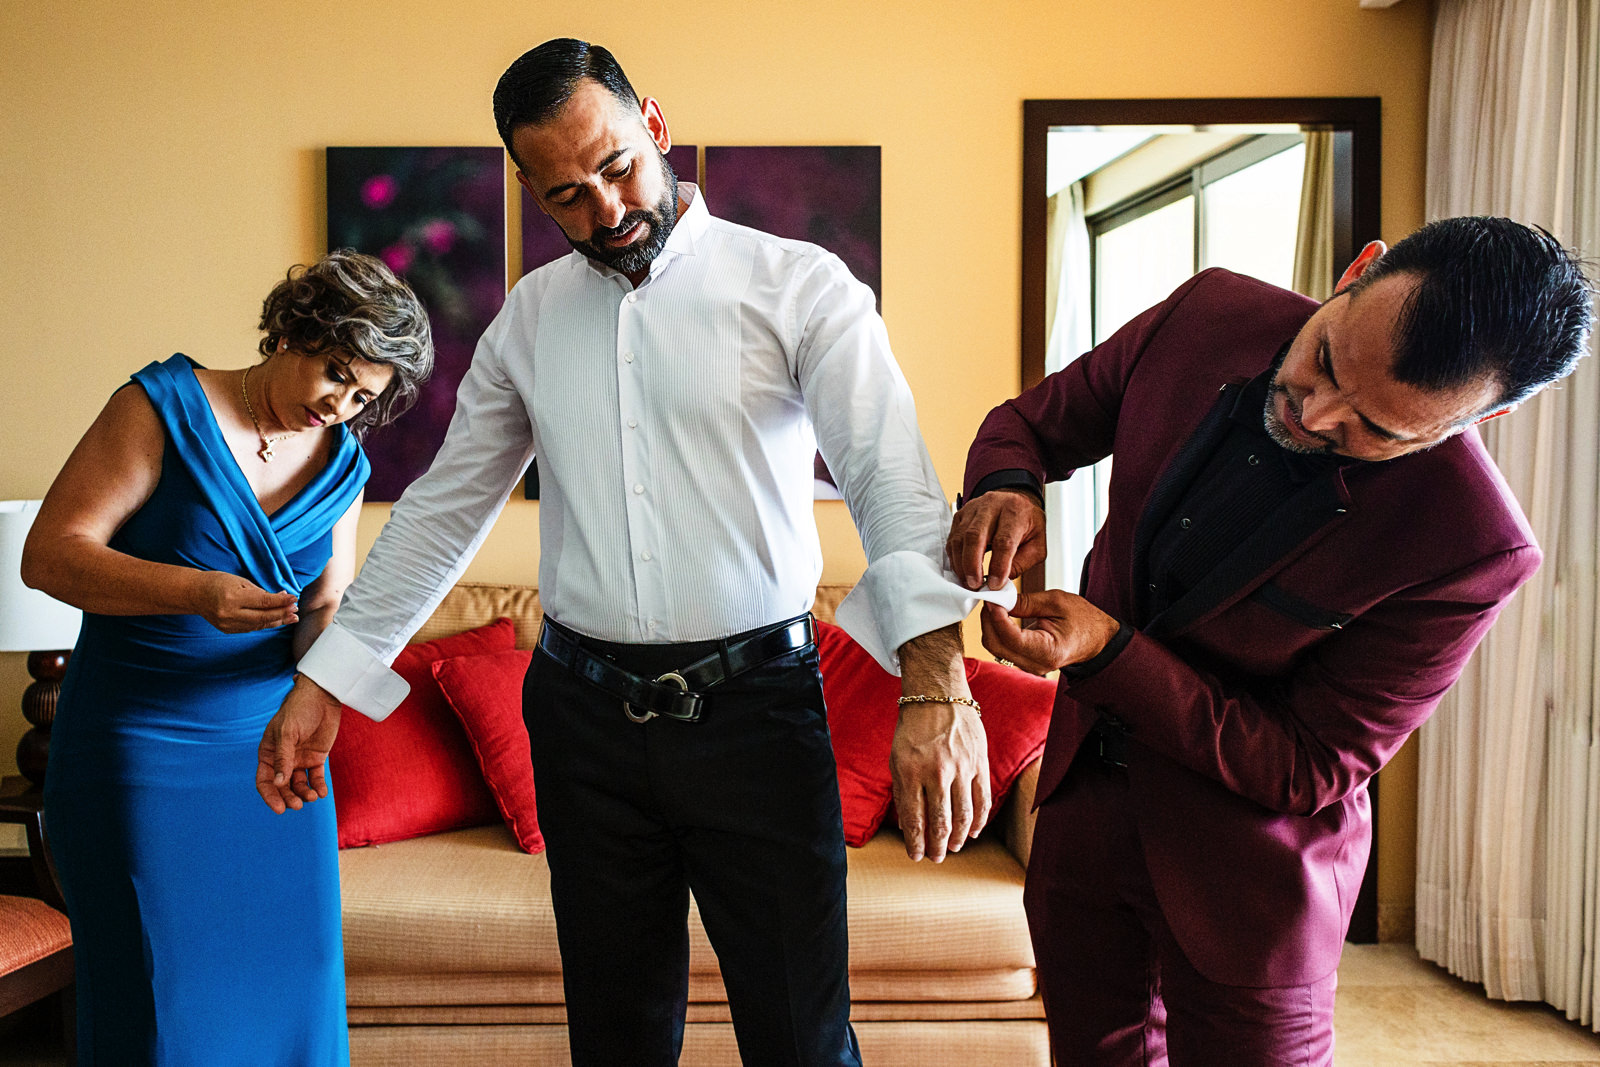 Groom is helped by godparents to put on the cufflinks.